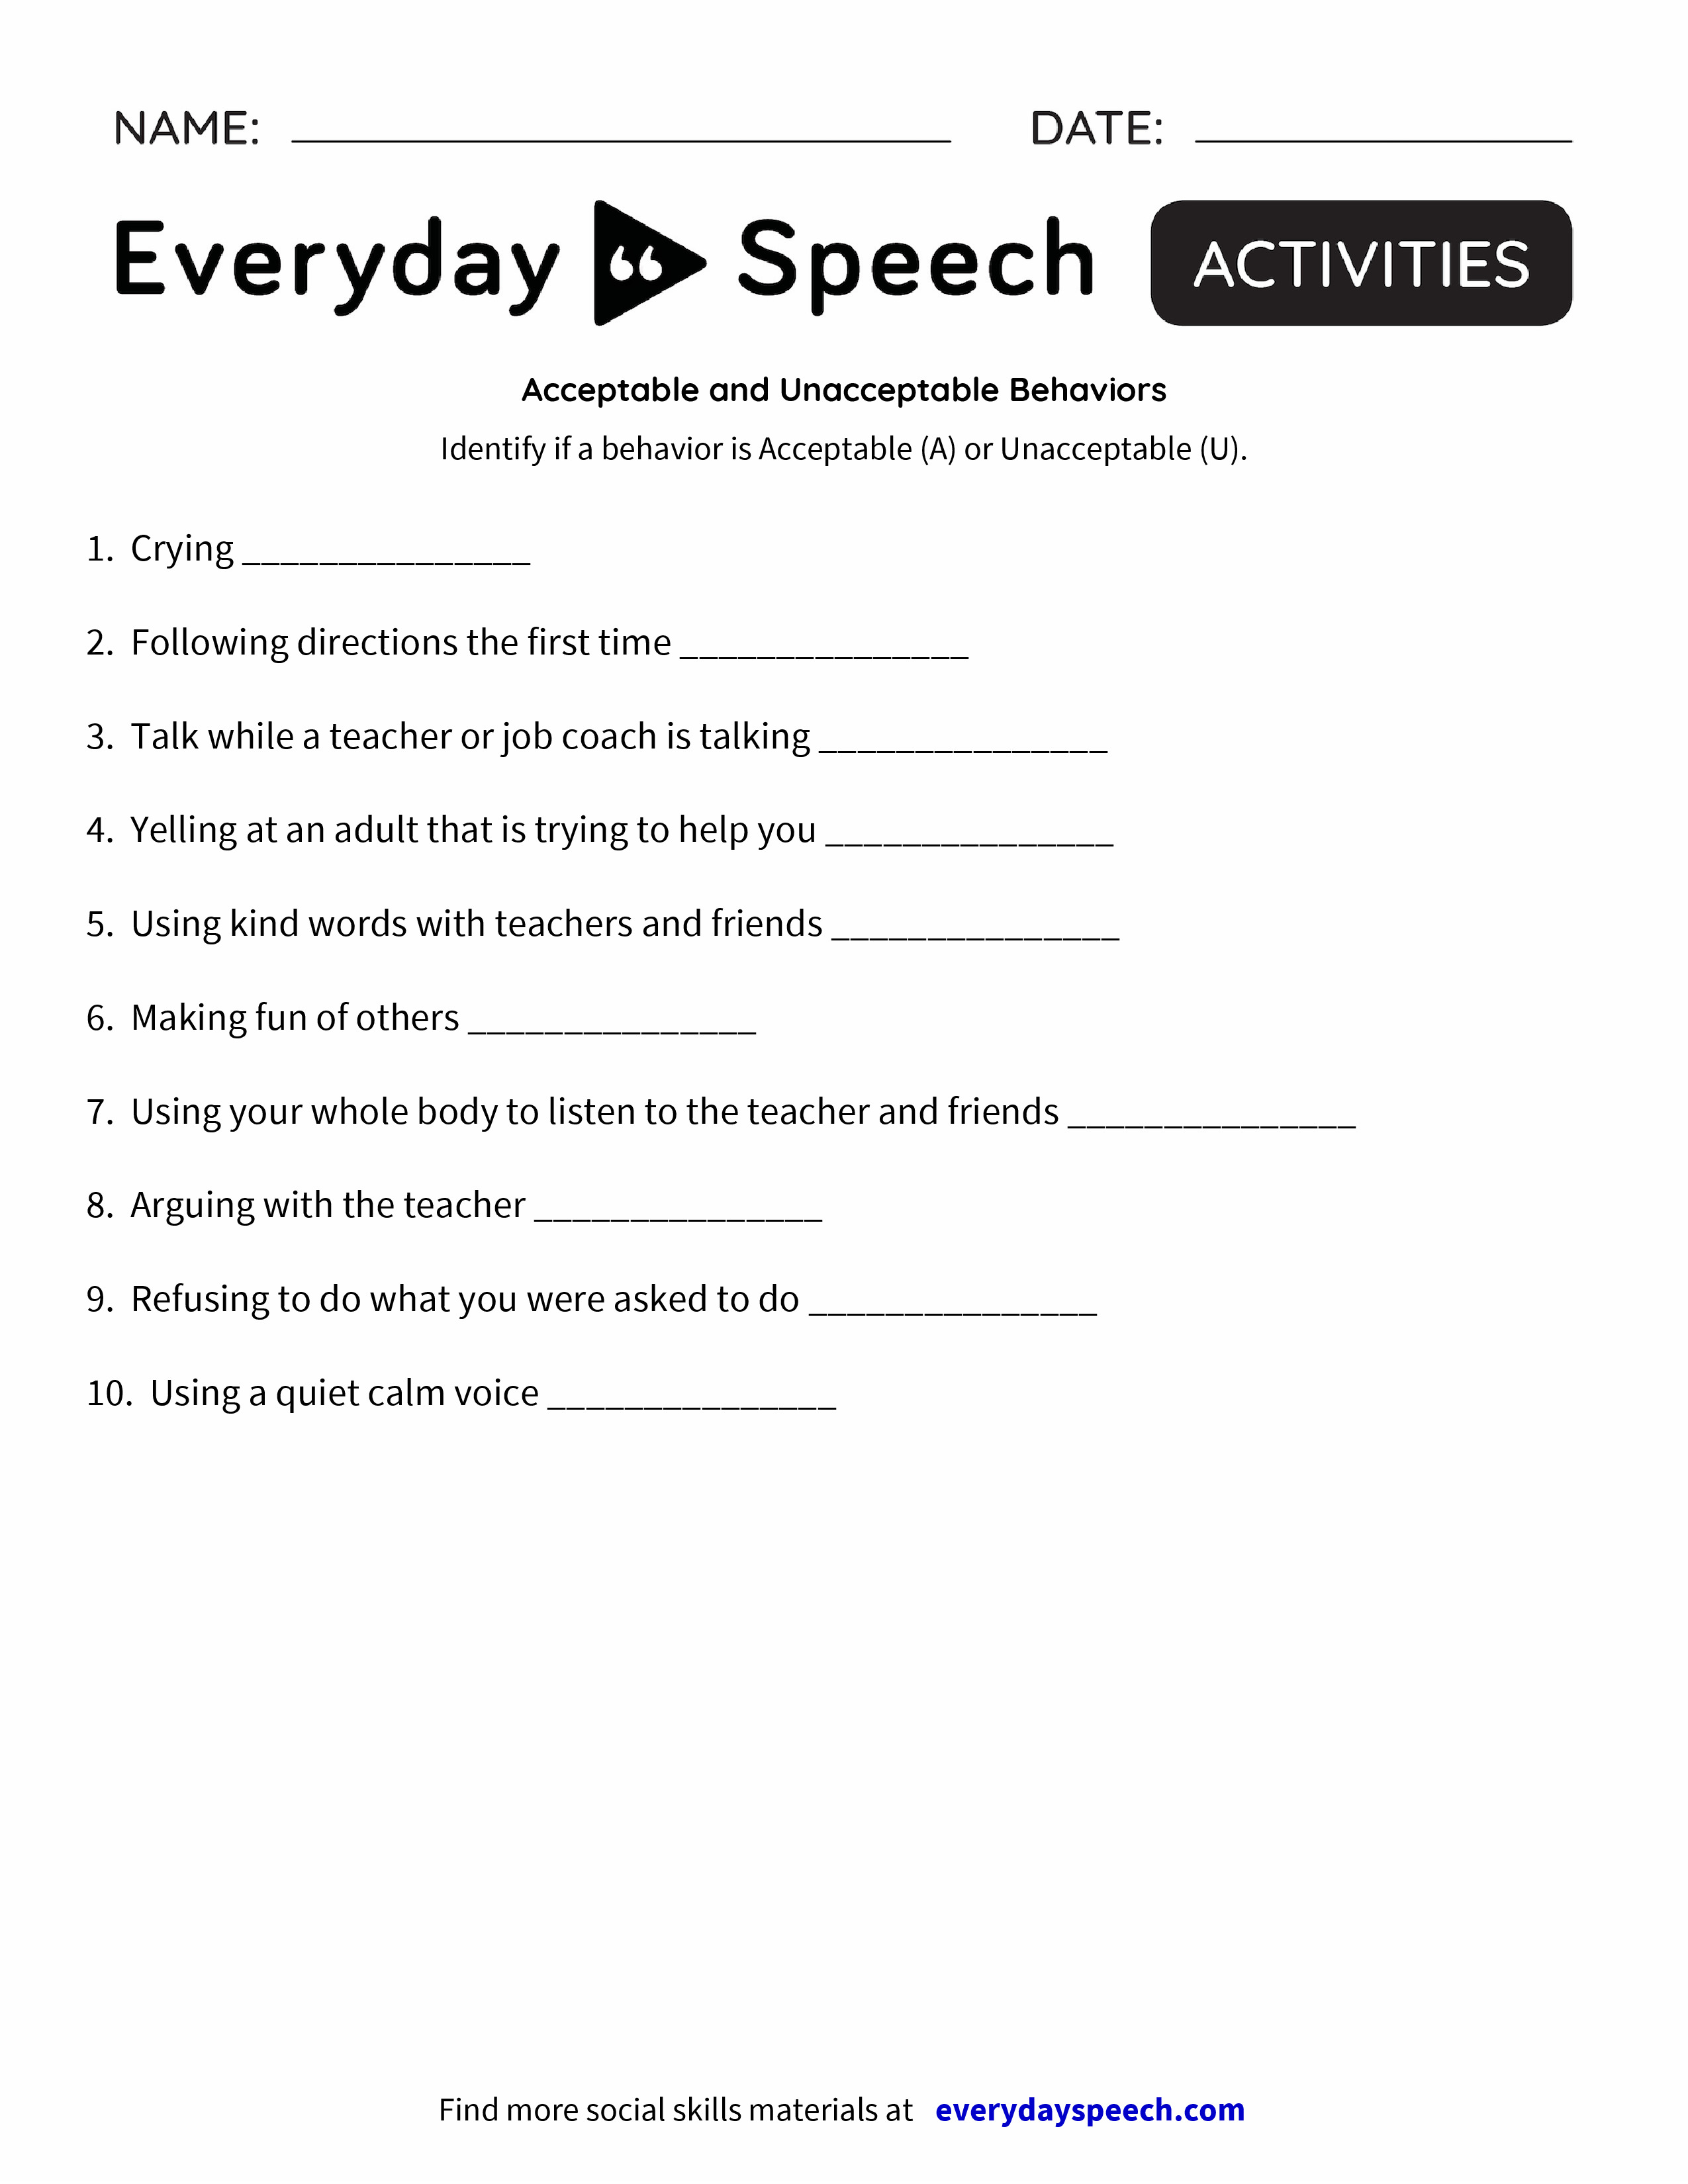 Acceptable and Unacceptable Behaviors - Everyday Speech - Everyday ...